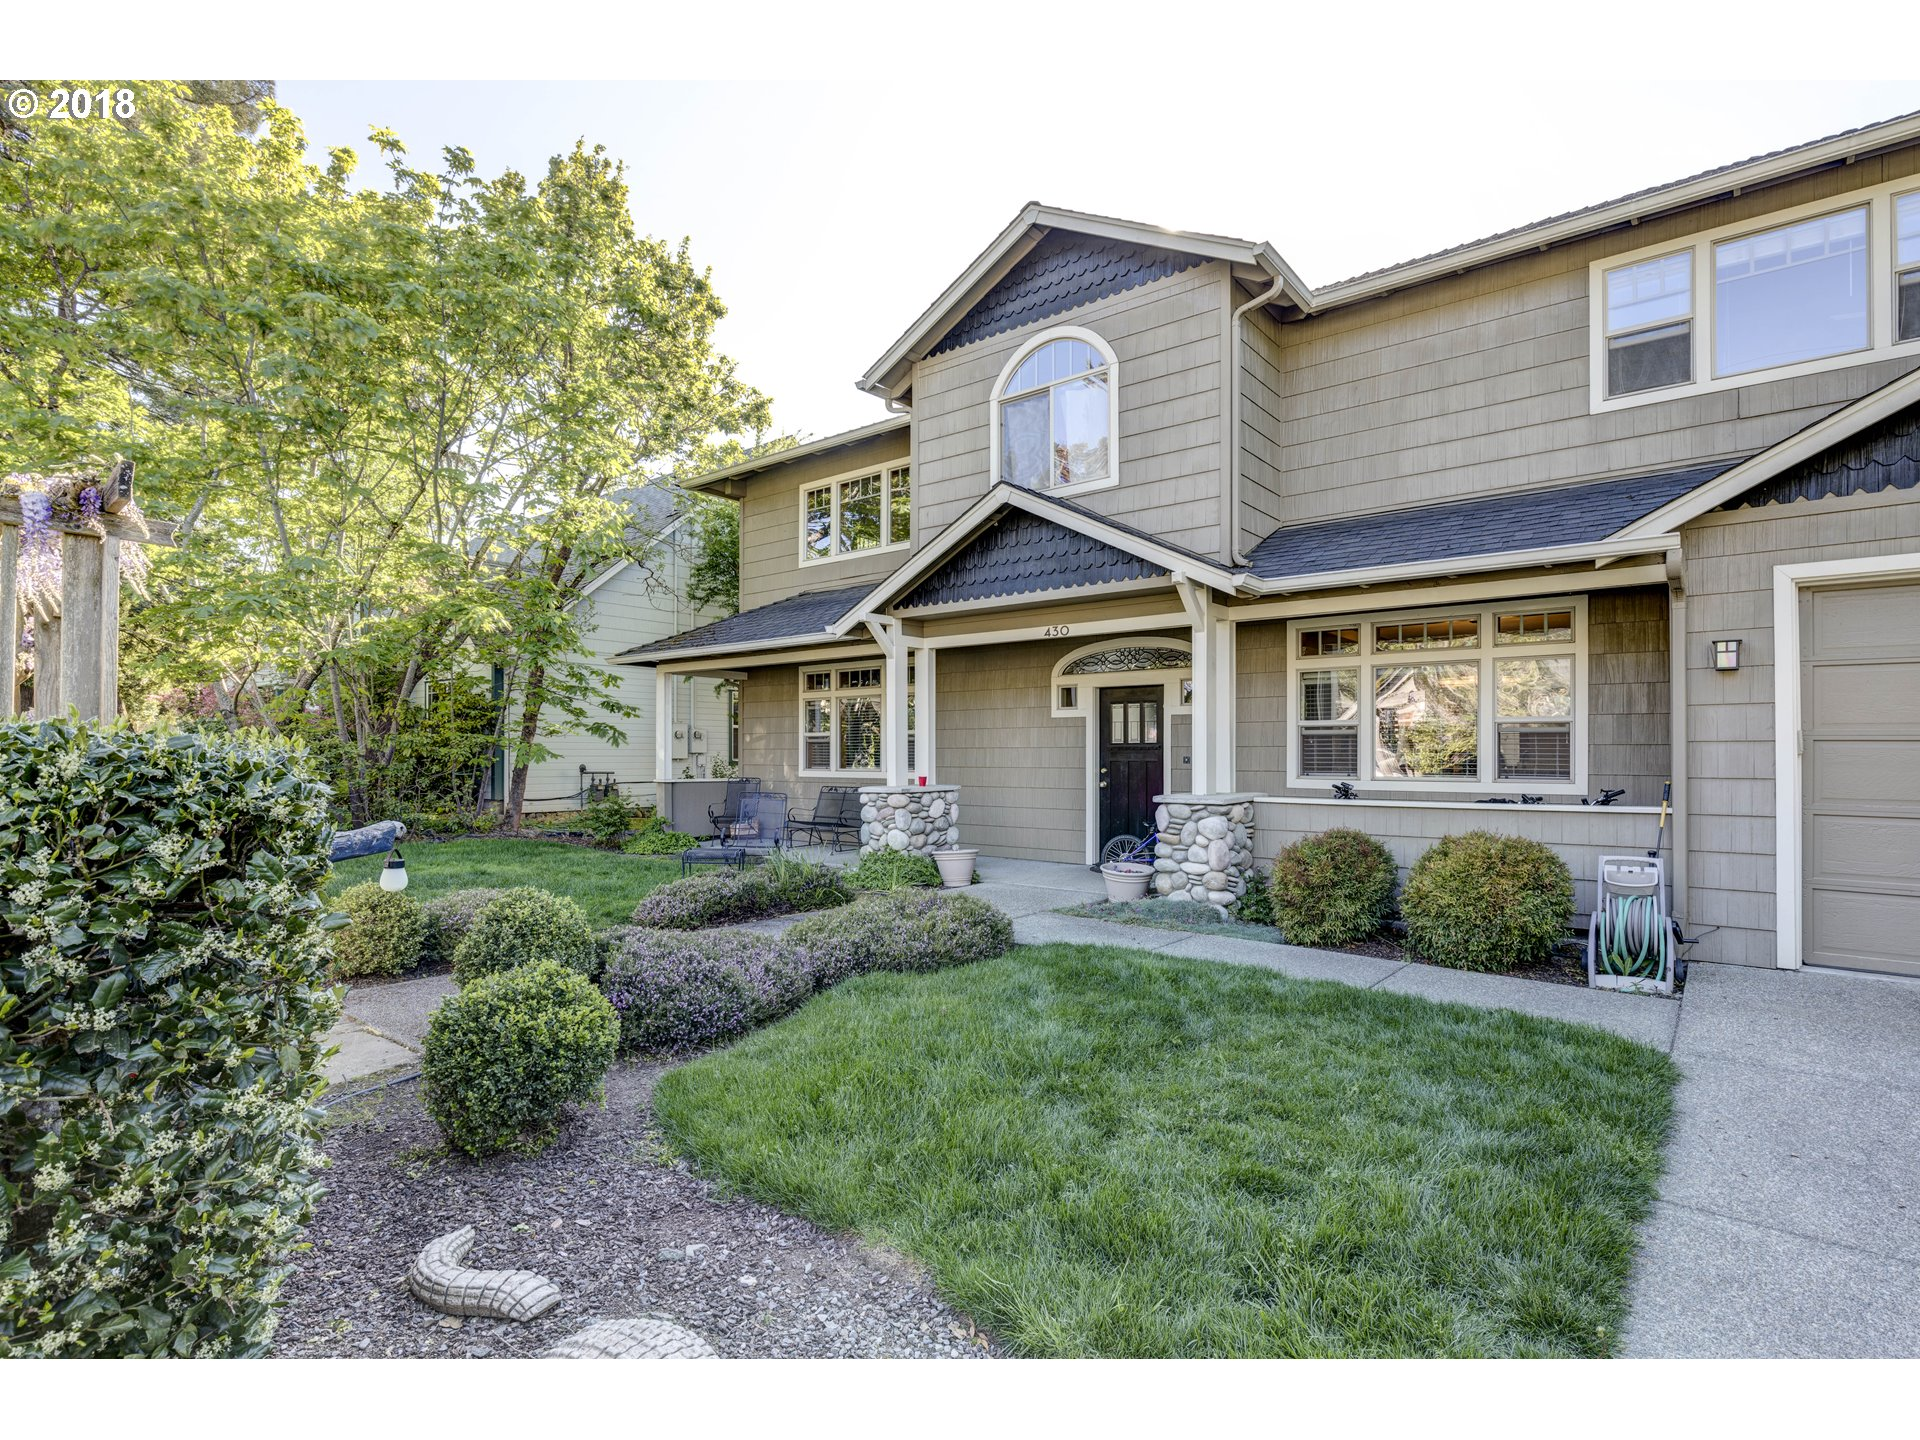 Medford, OR  Bedroom Home For Sale